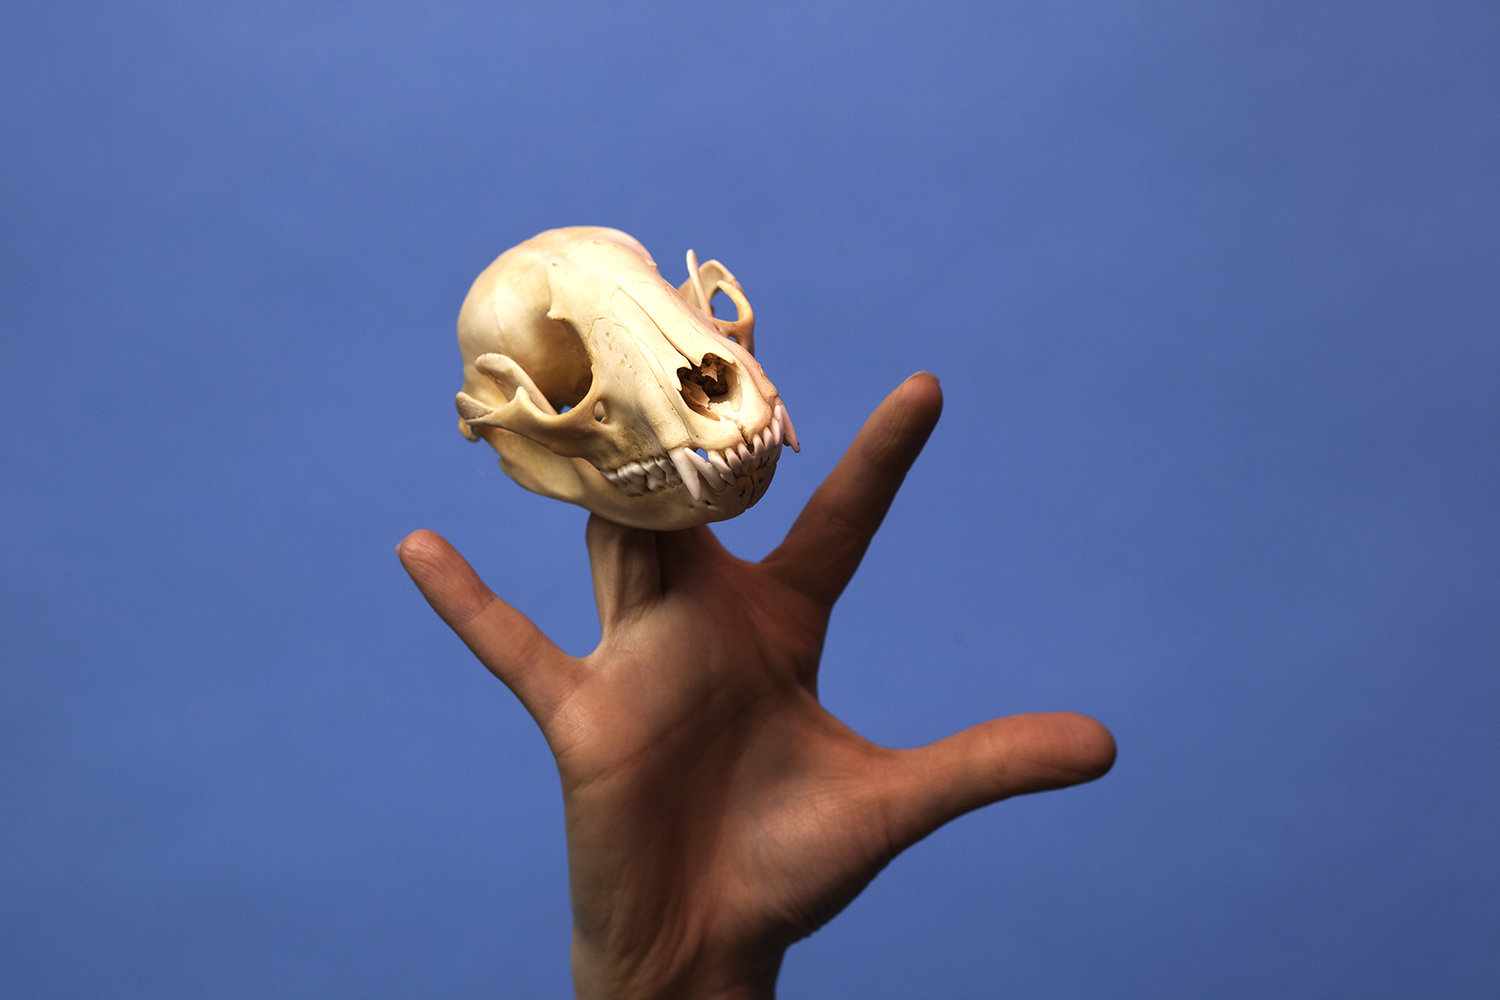 A hand holding an animal skull in front of a bright blue back drop shot by photographer Nicholas Rouke